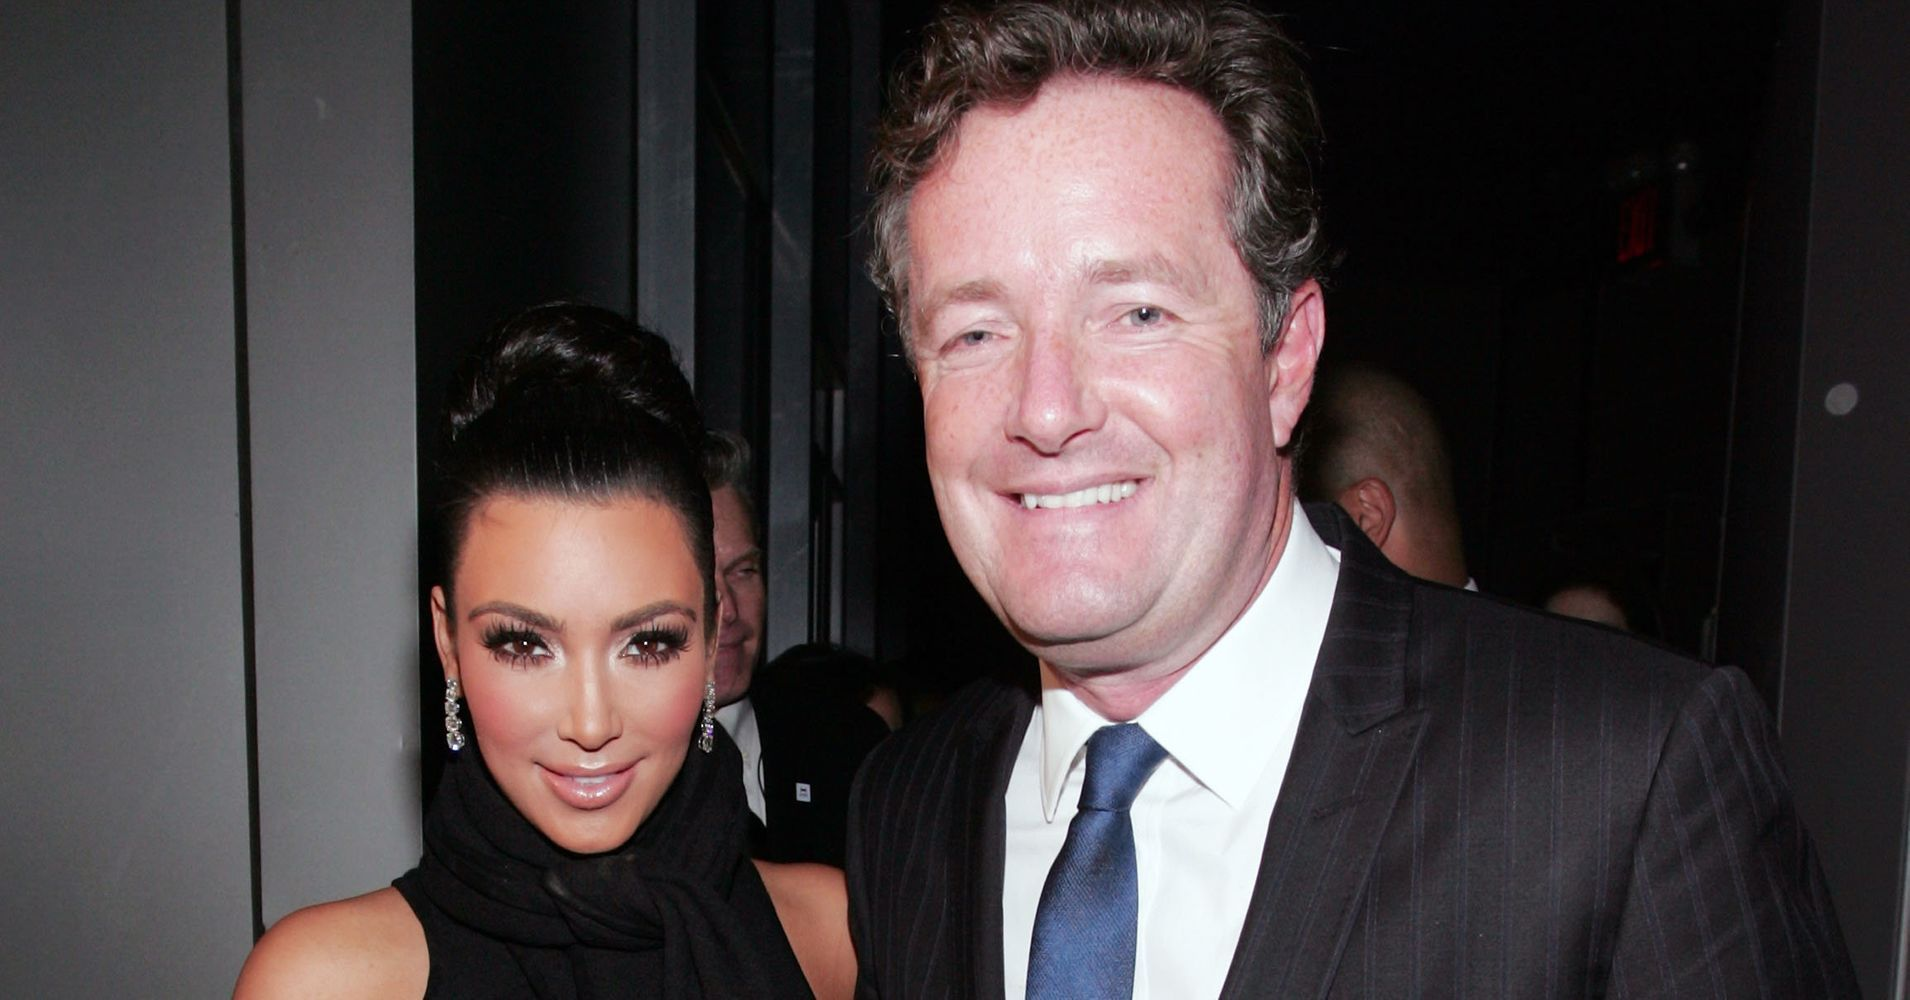 Piers Morgan Needs To Stop This Weird Crusade To Destroy Kim Kardashian - Huffington Post